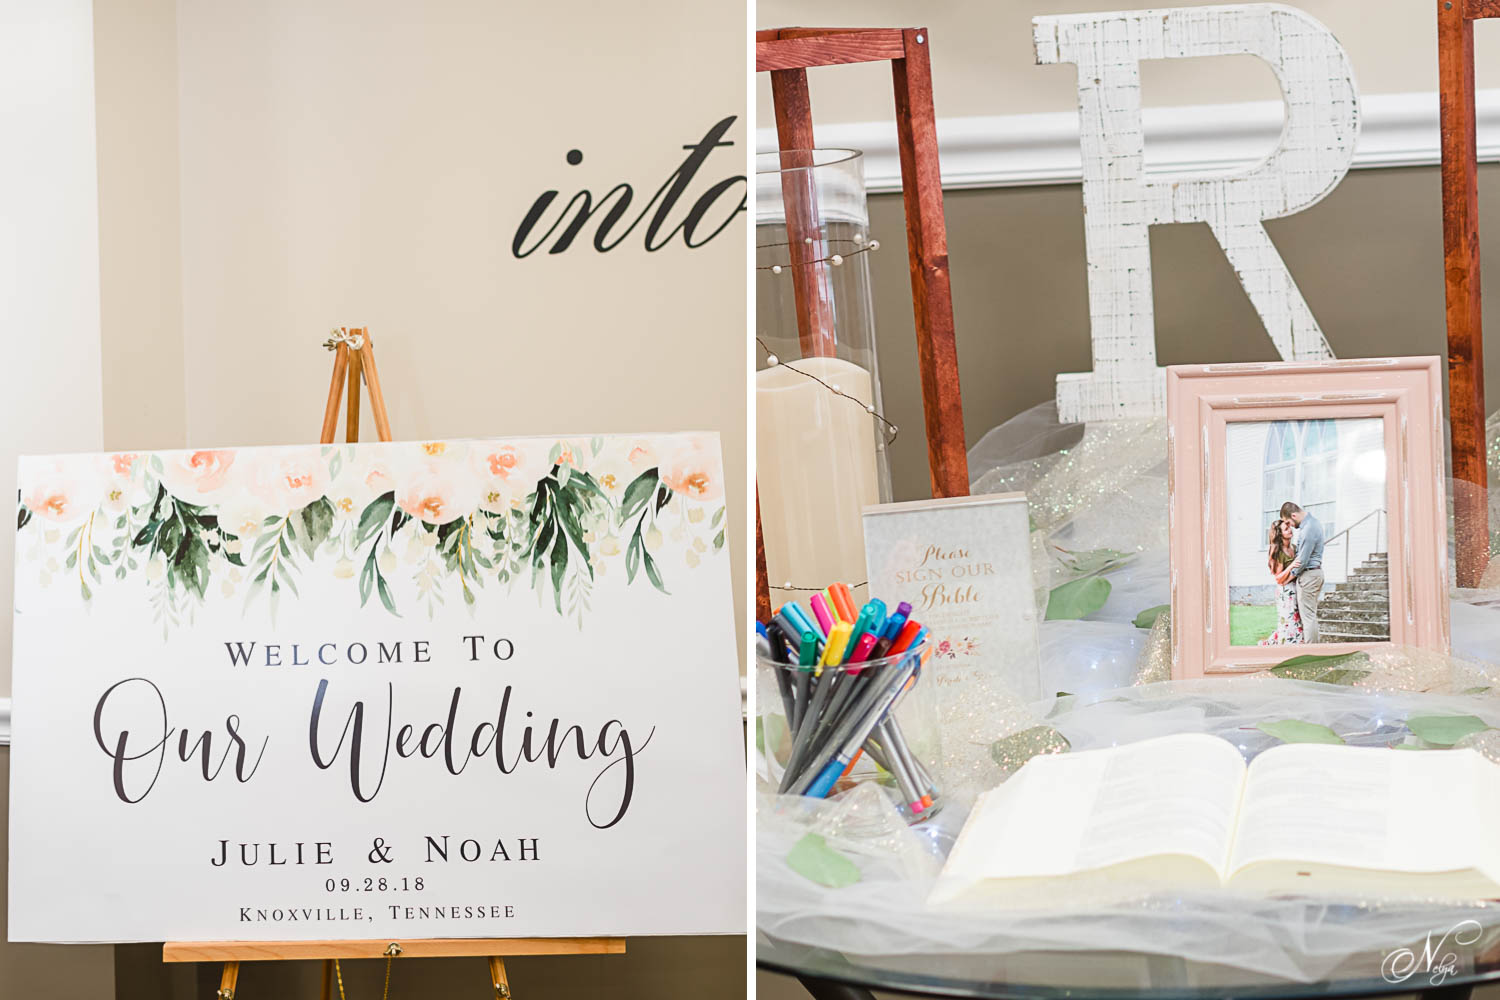 wedding sign on an easel inside the church. And a guestbook and highlighters to highlight a favorite verse in the bible for the bride and groom to read later.